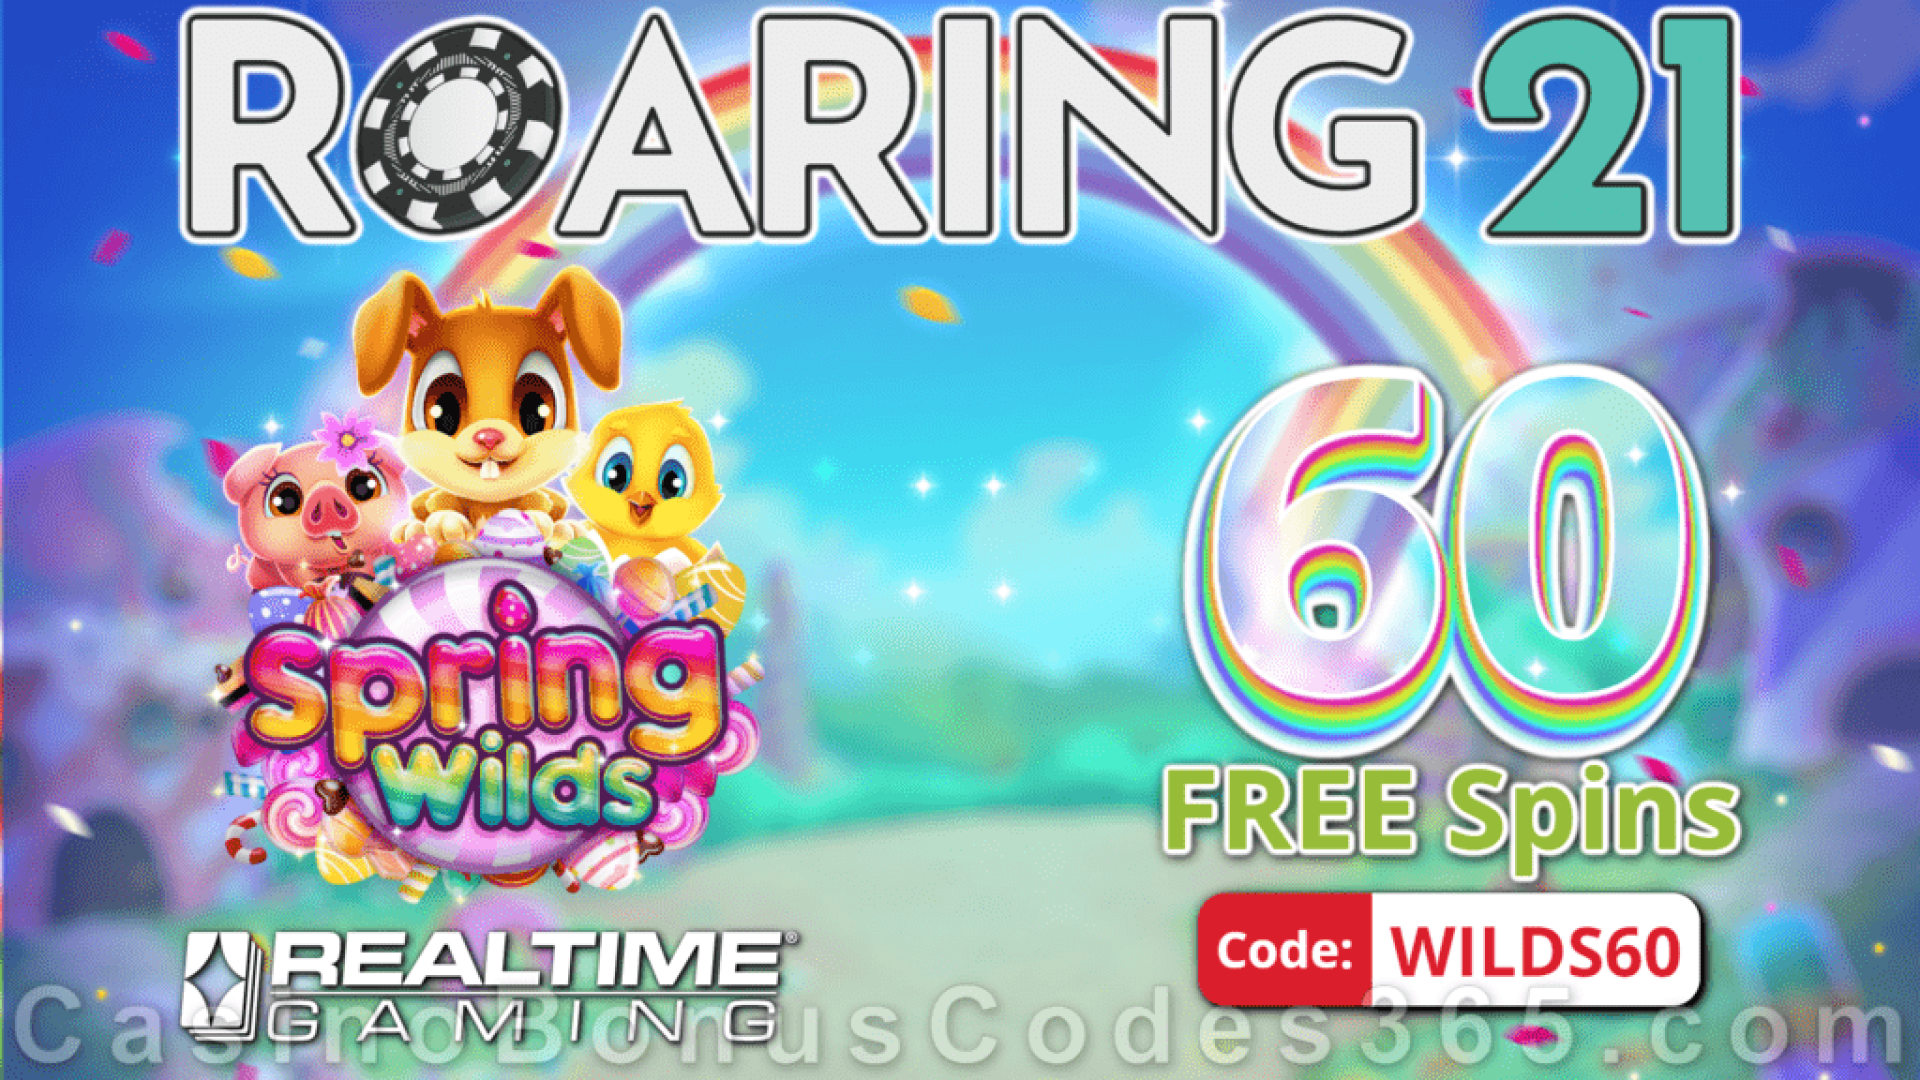 Roaring 21 New RTG Game 60 FREE Spring Wilds Spins Special No Deposit New Players Deal